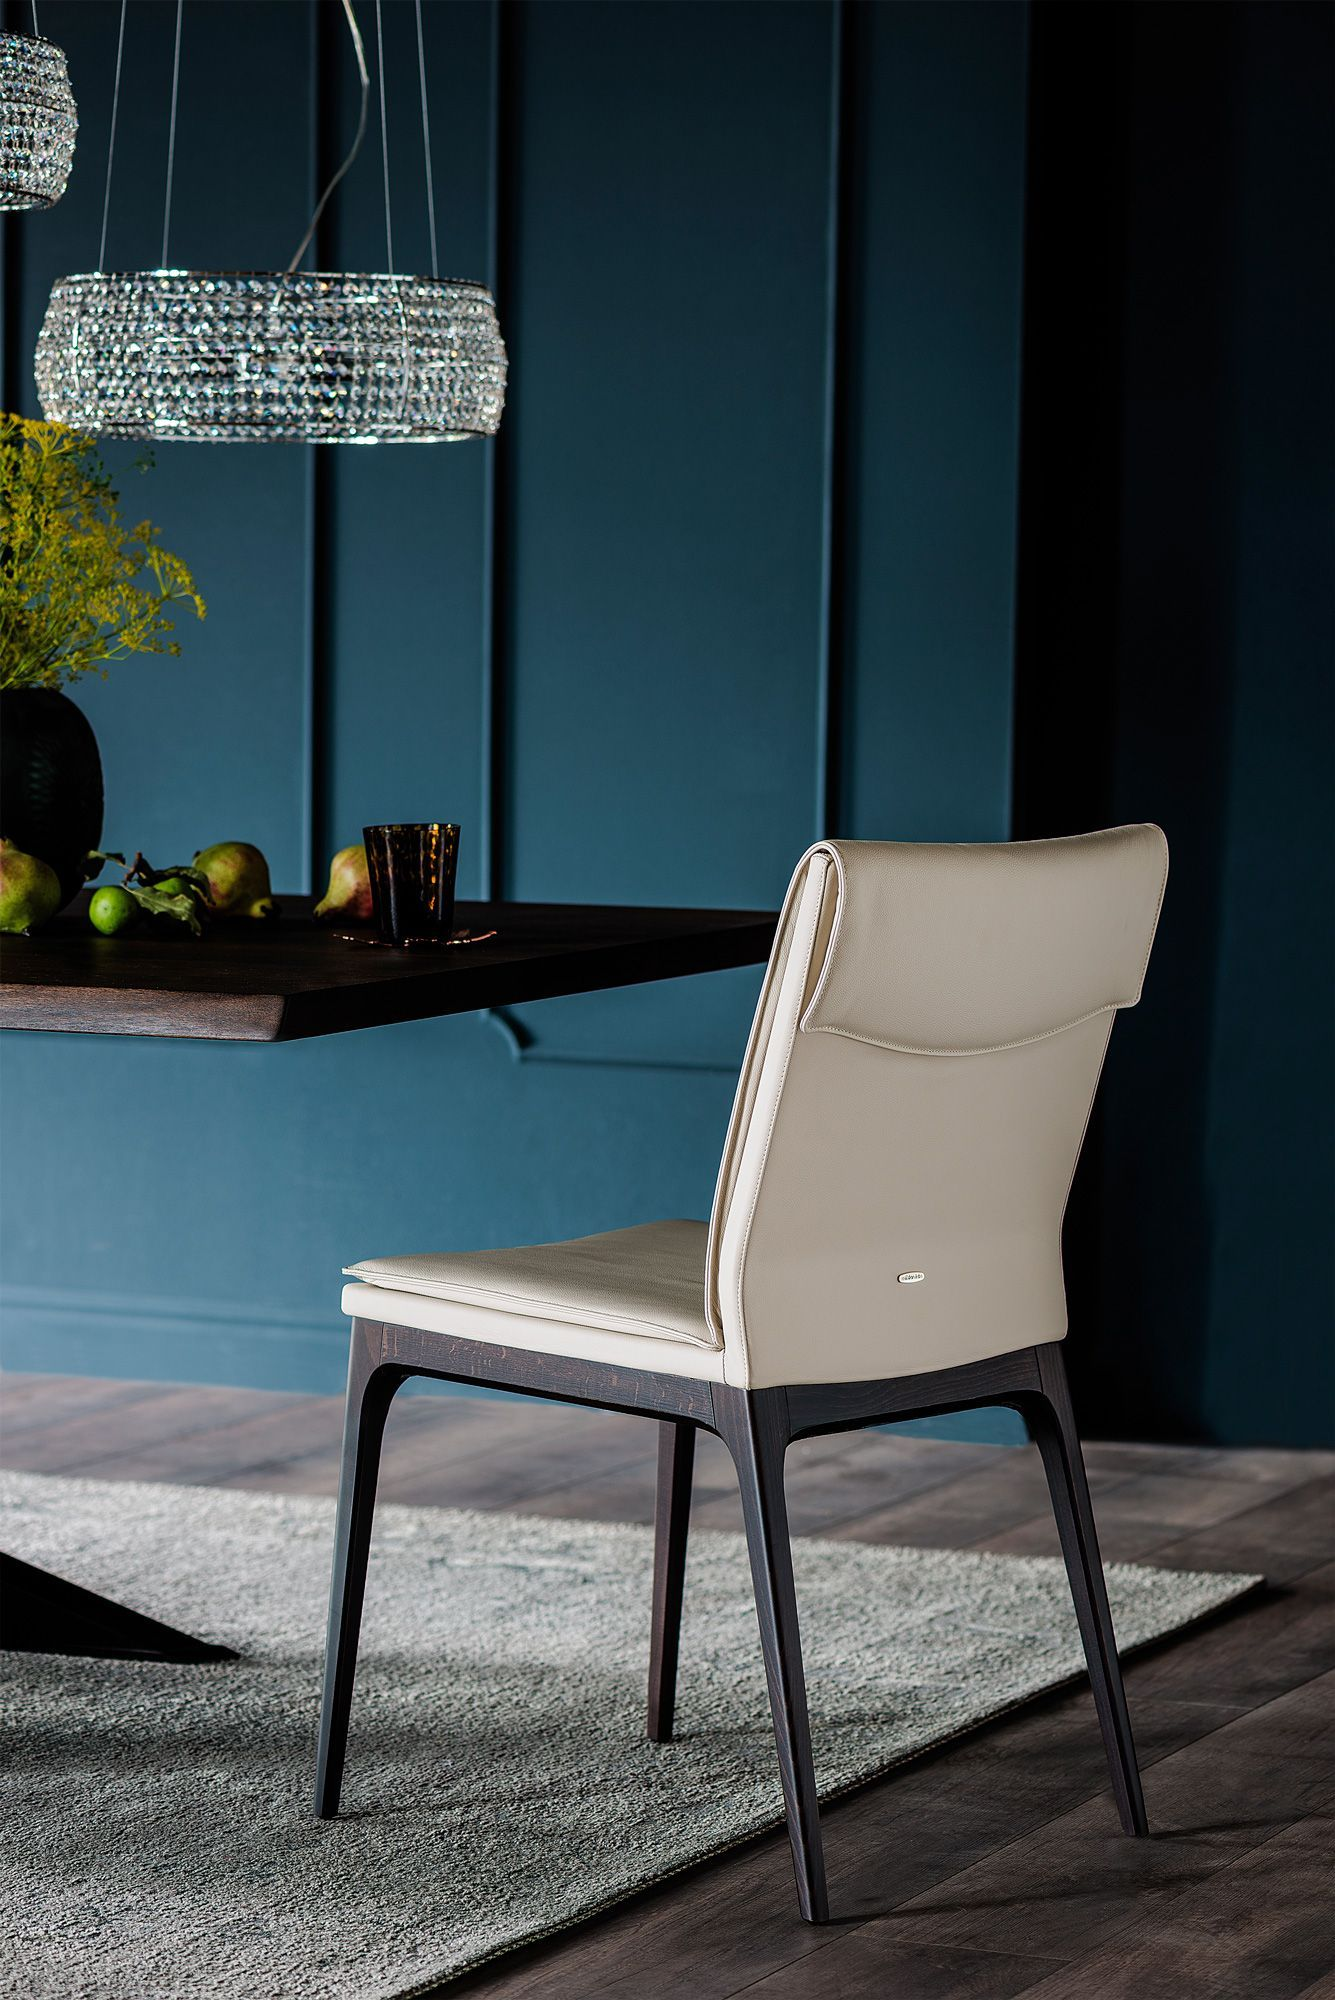 Italian Furniture Designers Luxury Italian Style And: Luxury Contemporary Italian Sofia Chair, Upholstered In